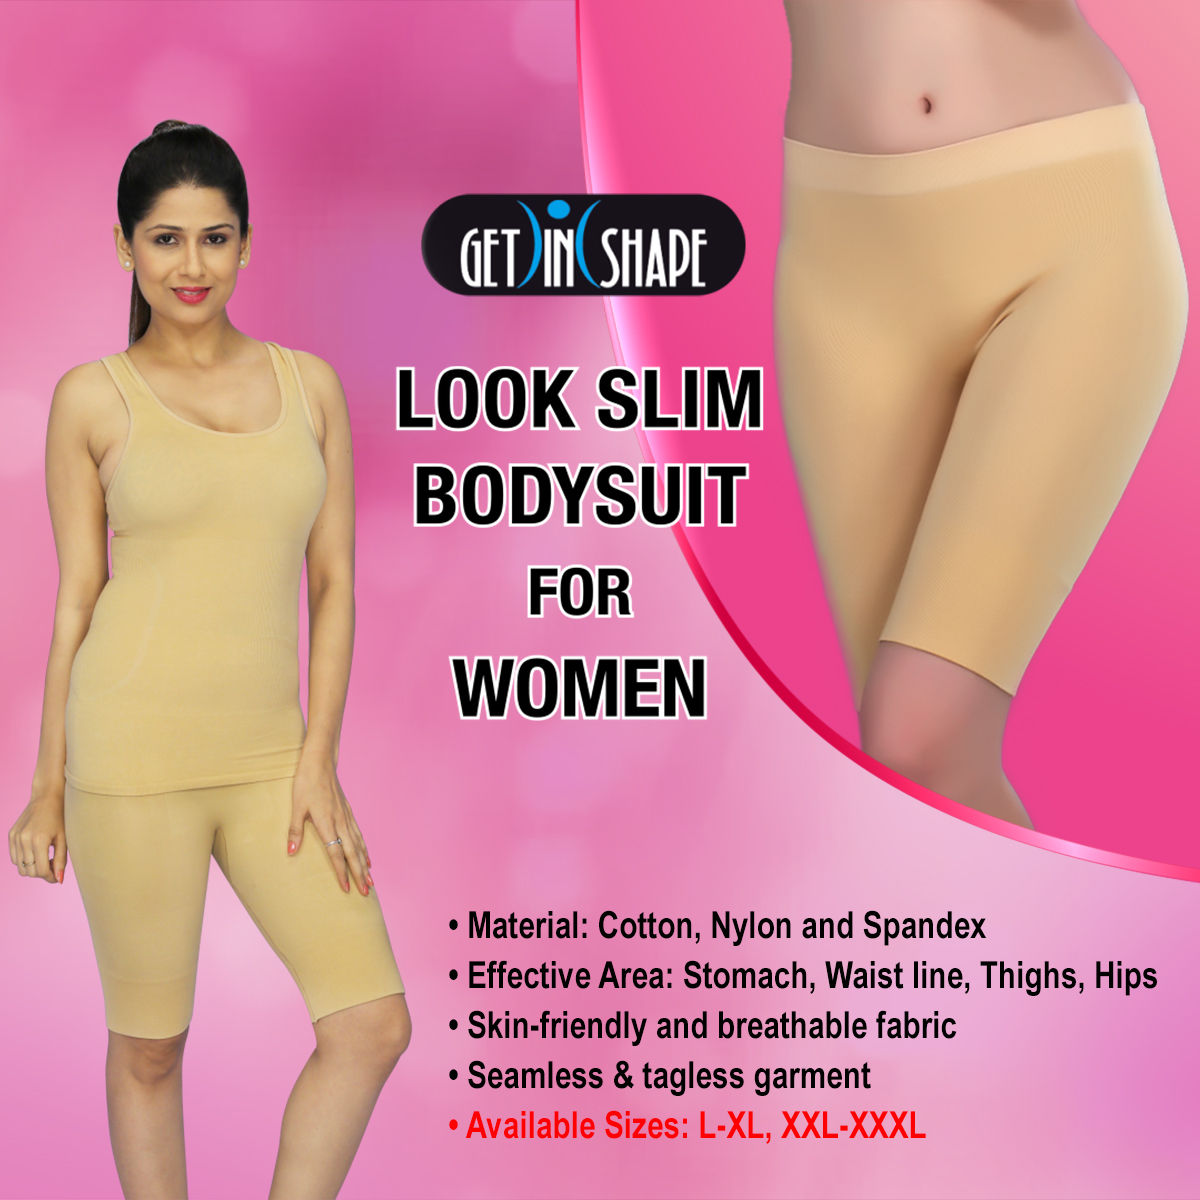 f60bff0ab2 Buy Get In Shape Look Slim Bodysuit for Women Online at Best Price in India  on Naaptol.com